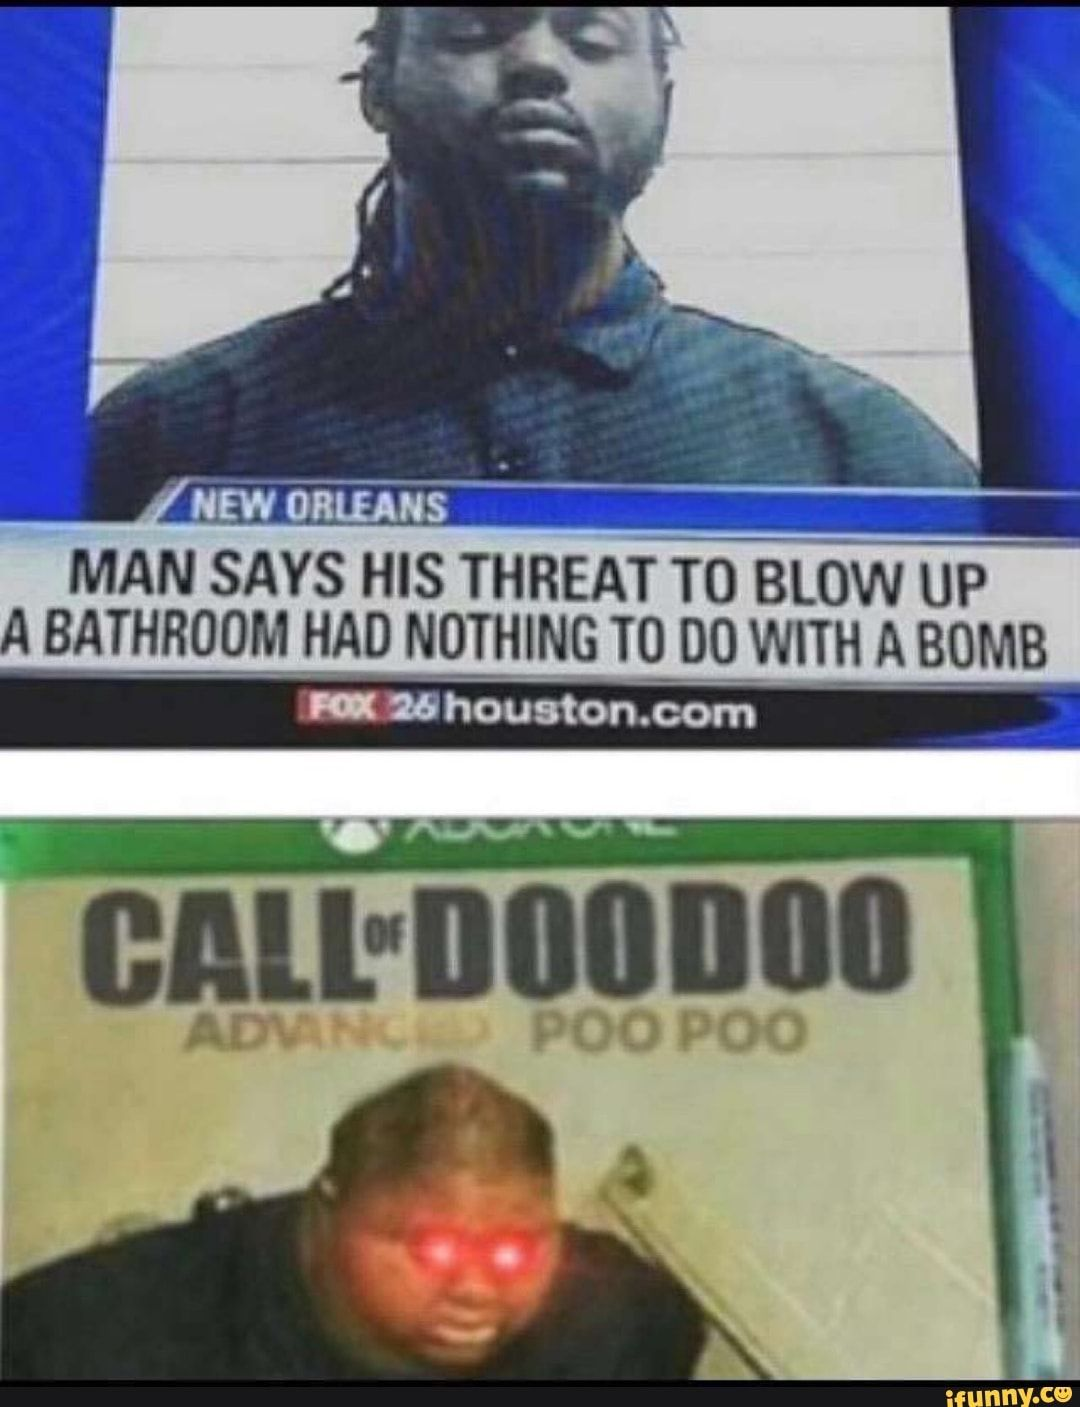 Man Says His Threat T0 Blow Up A Bathroom Had Ndthing T0 Do With A Bomb L Houston Com Ifunny Memes Threat Edgy Memes